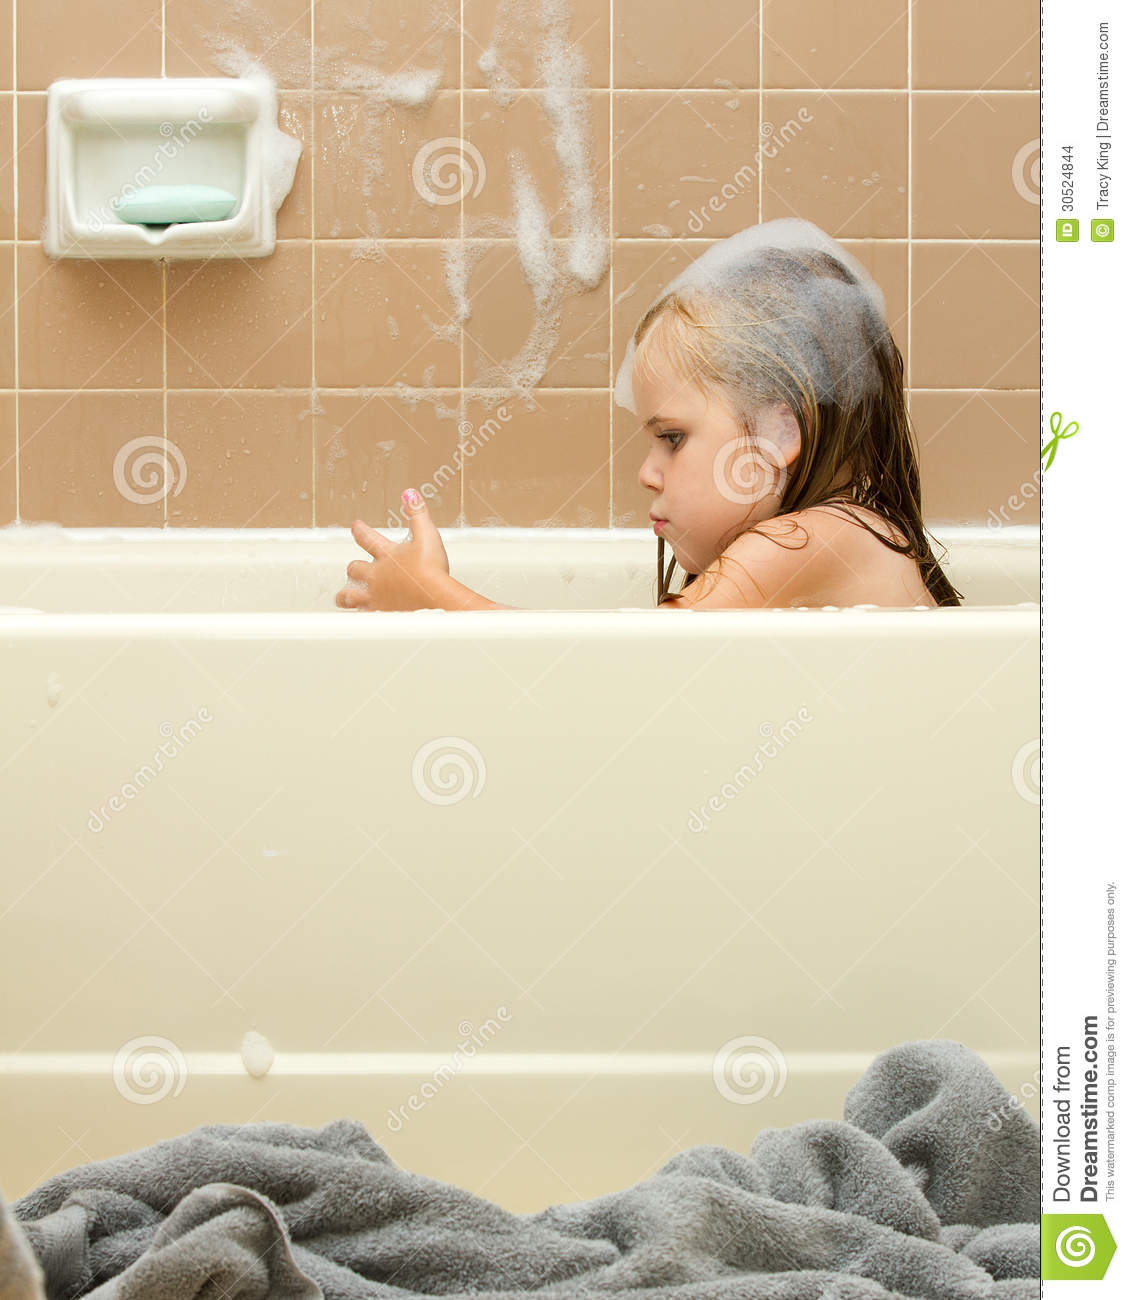 Young Child Cleaning In The Tub Stock Photo - Image of water, smile ...